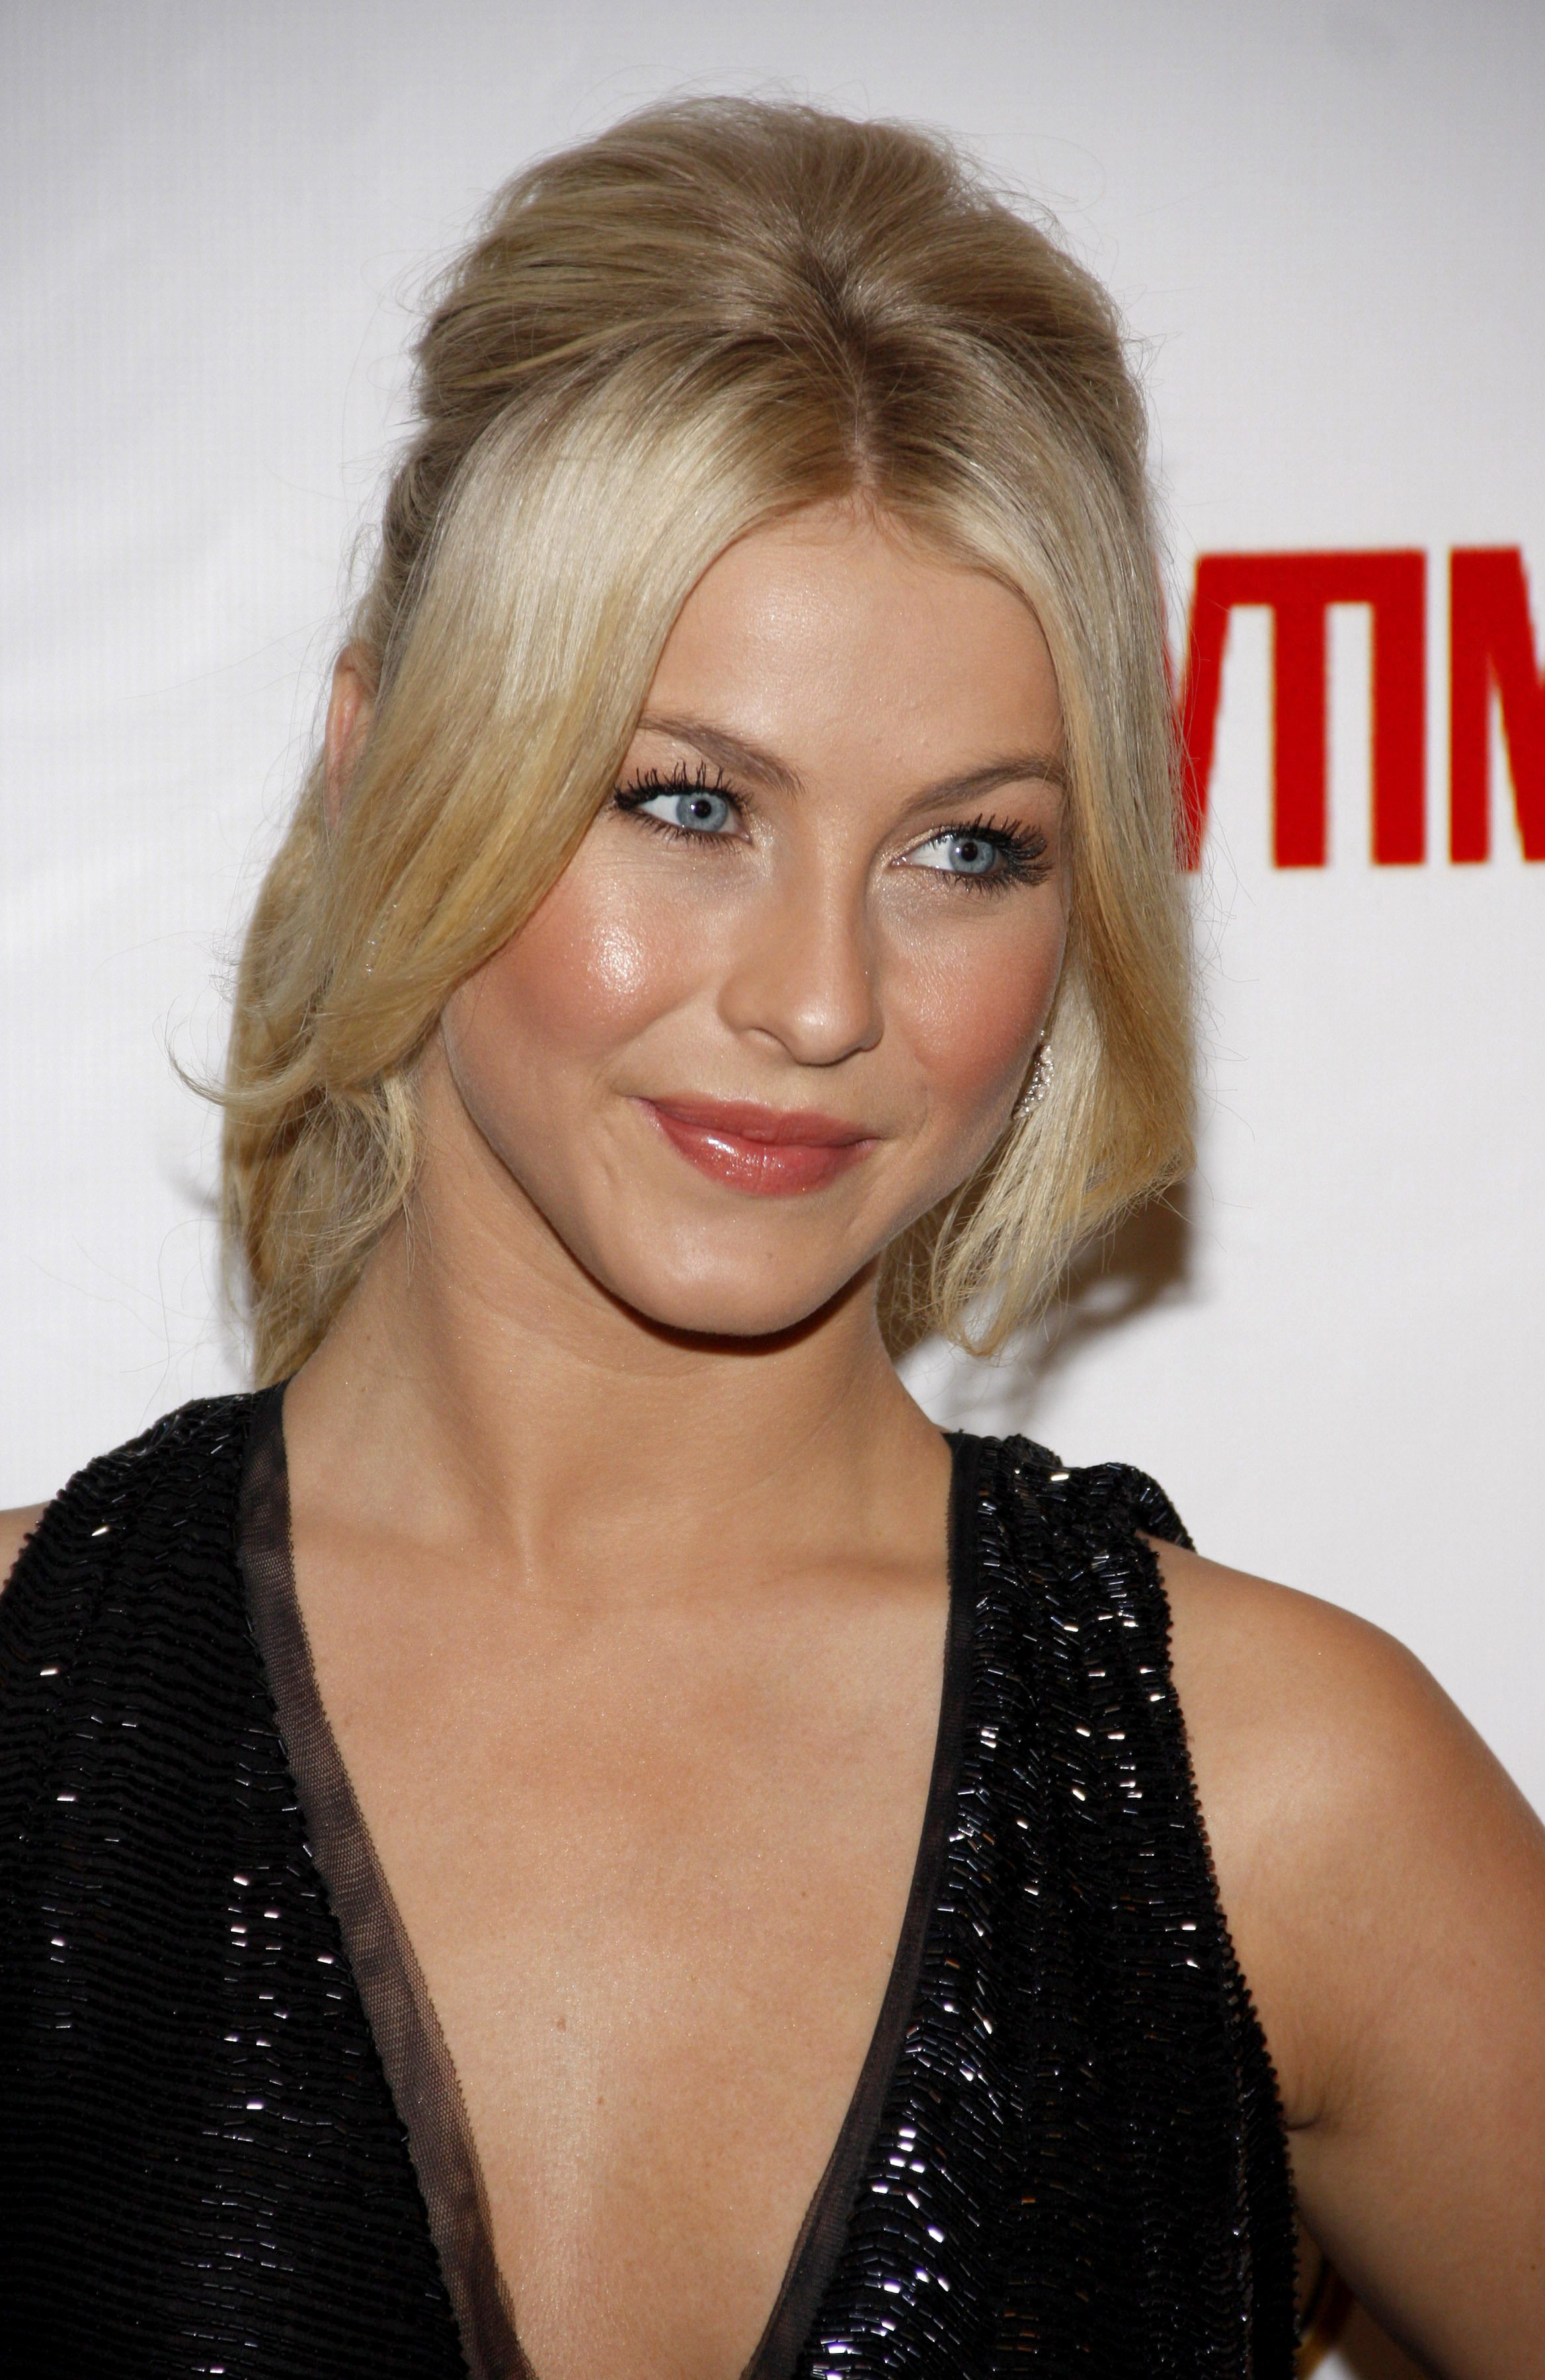 Julianne Hough Parting Those Fringes in the Middle